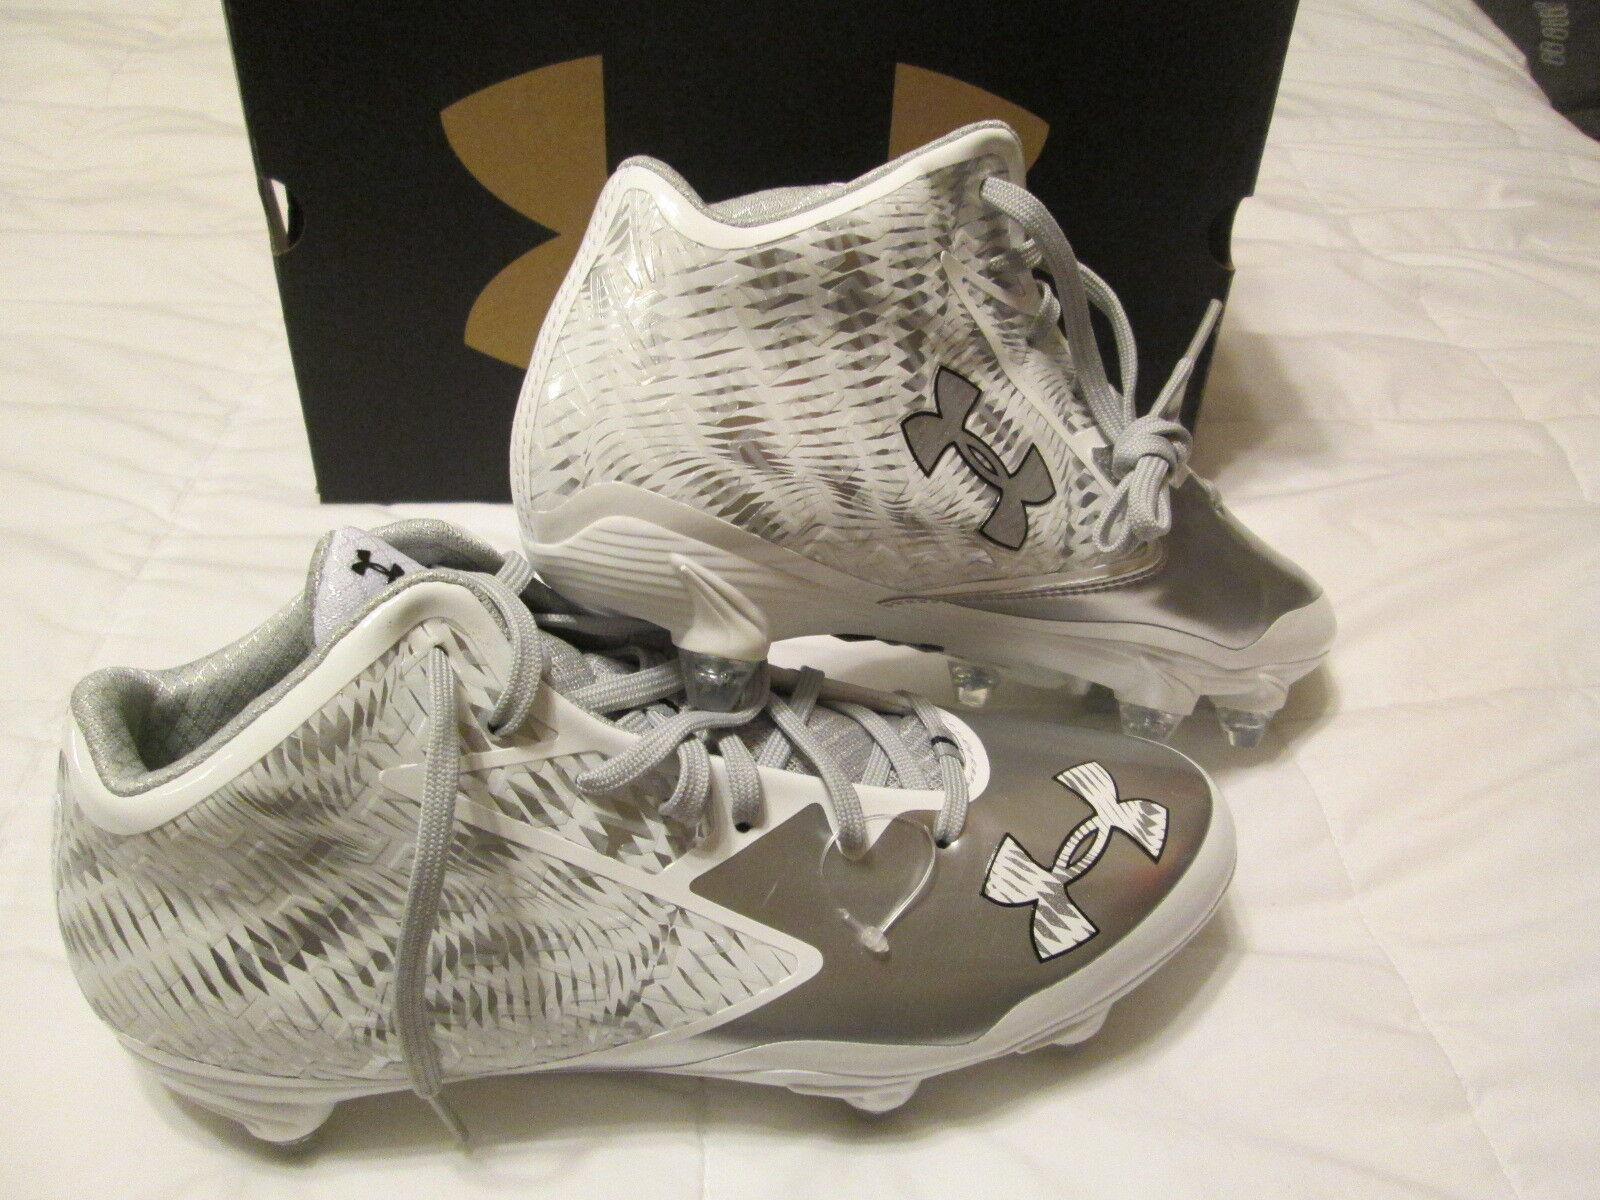 BRAND NEW Mens UNDER ARMOUR Football Cleats Slvr/Wht 11